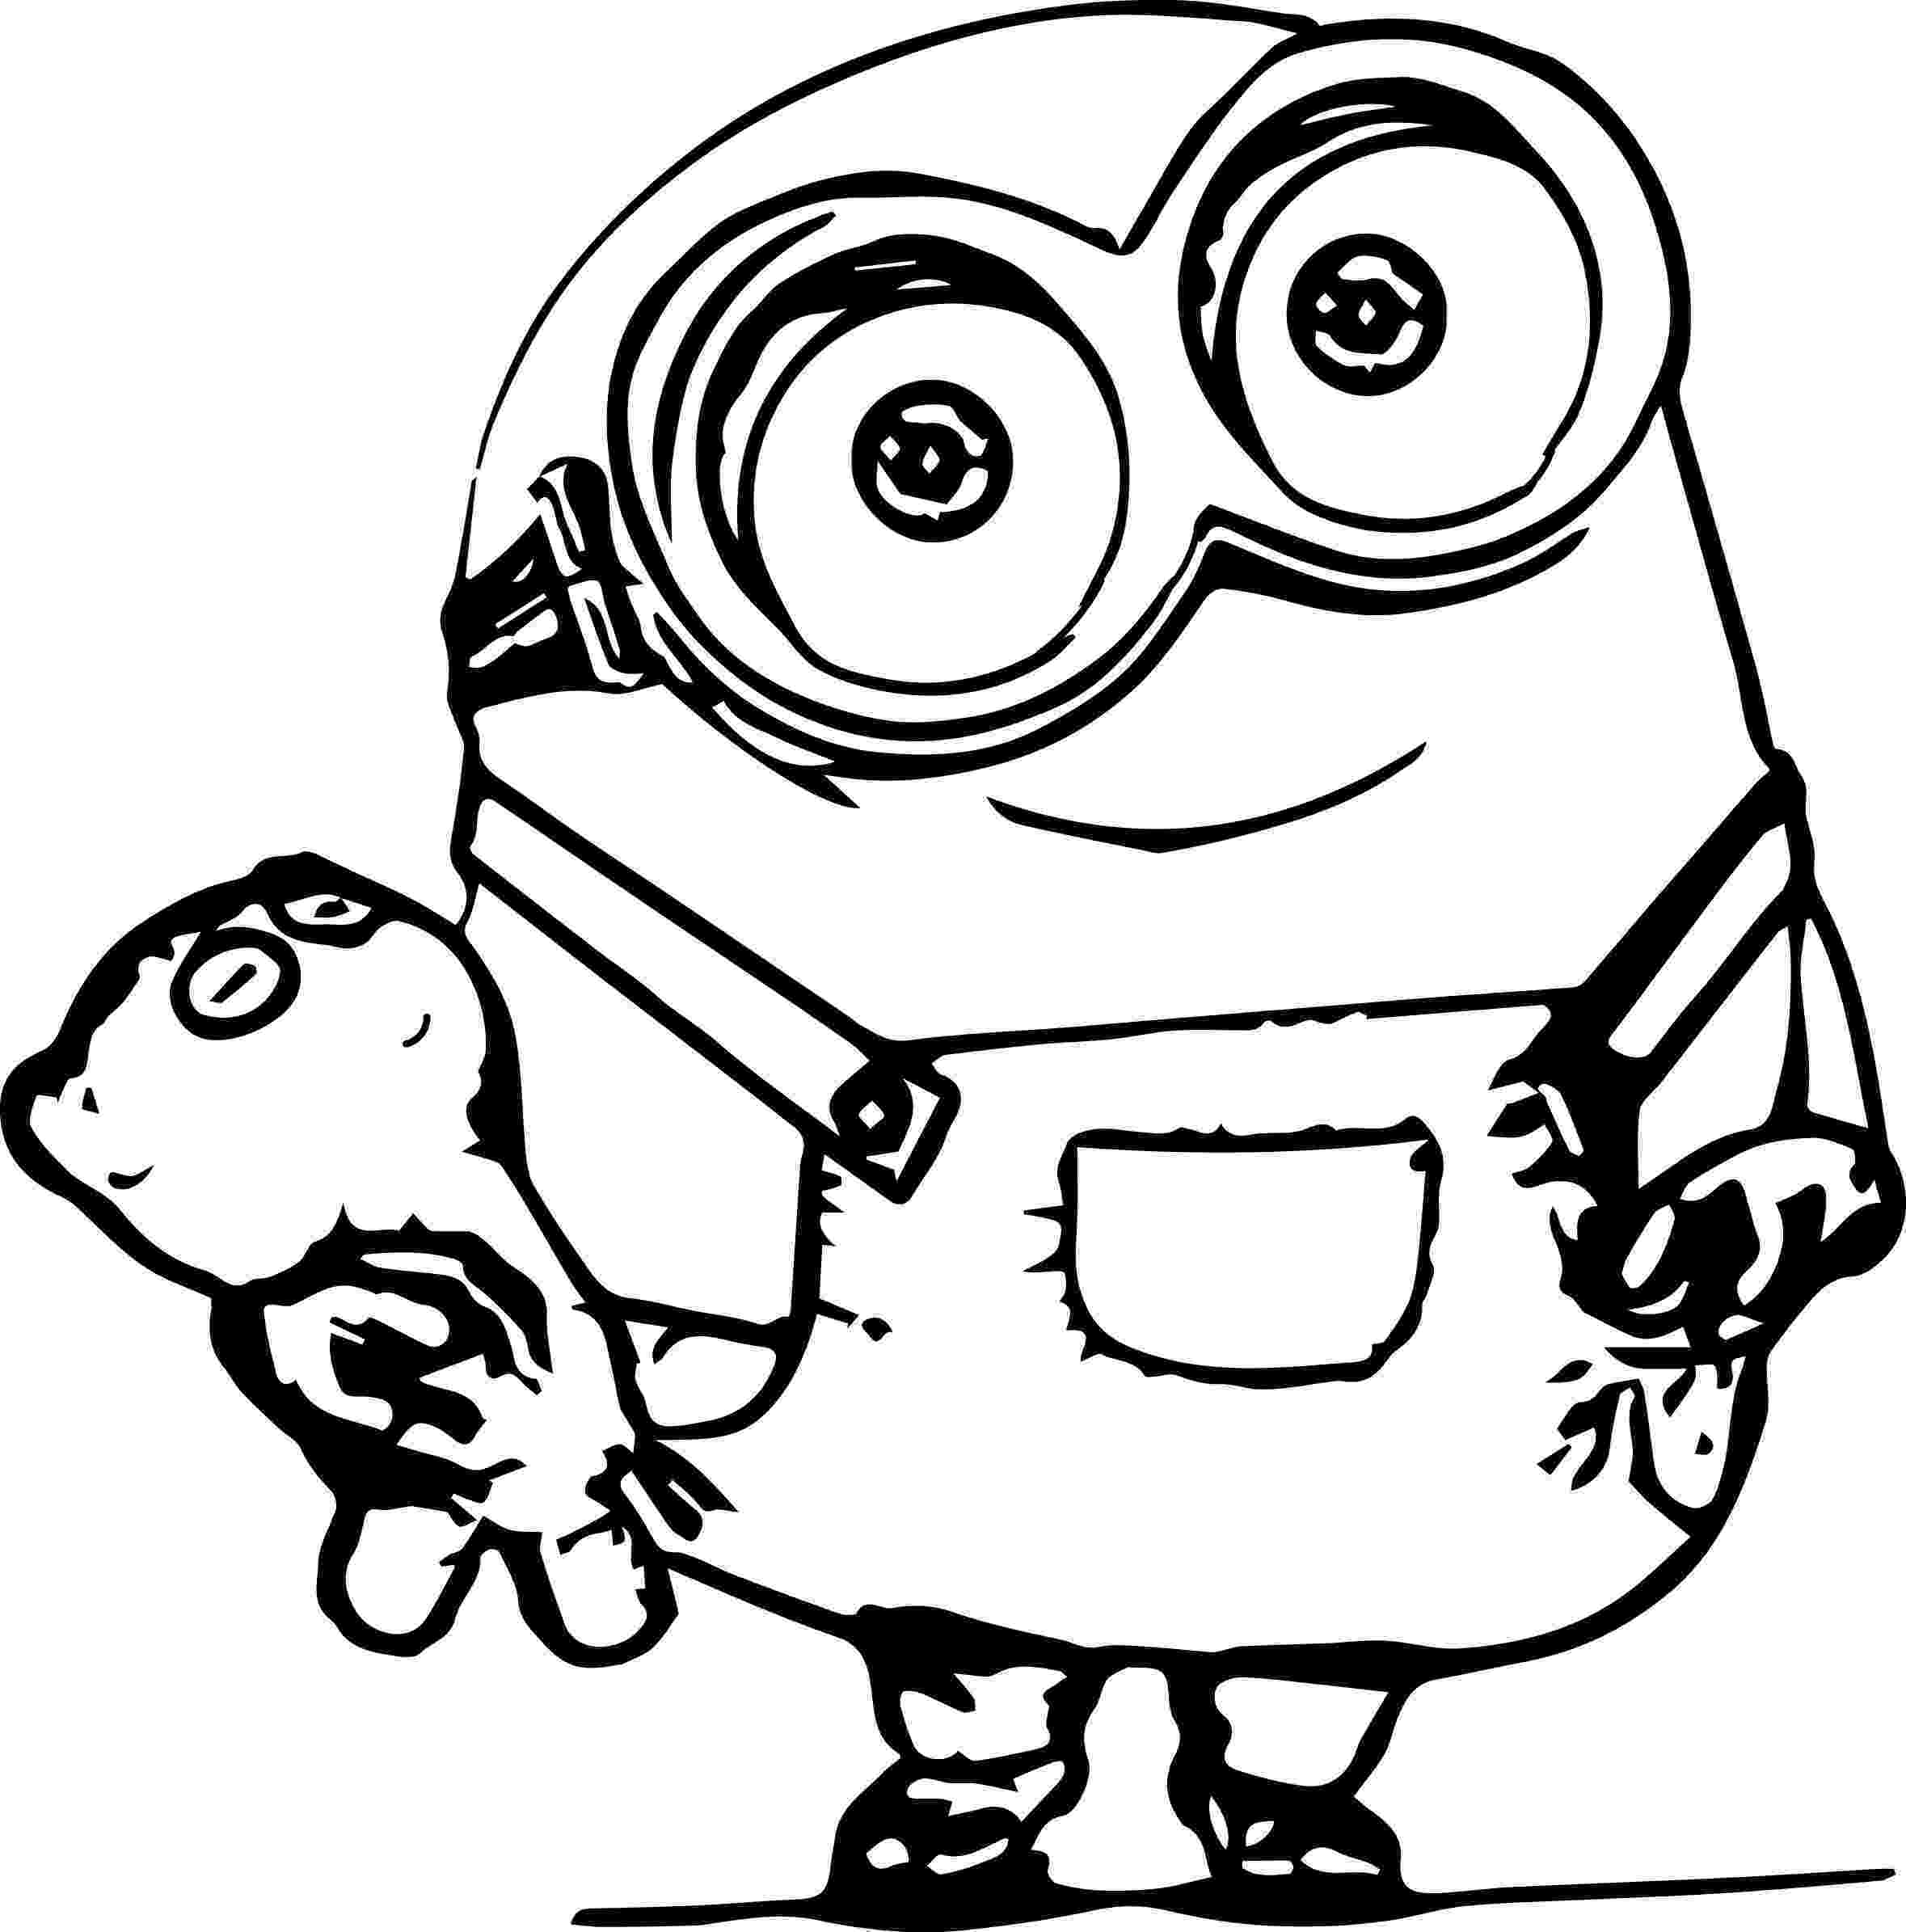 minion coloring pages online collection of minion clipart free download best minion pages online minion coloring